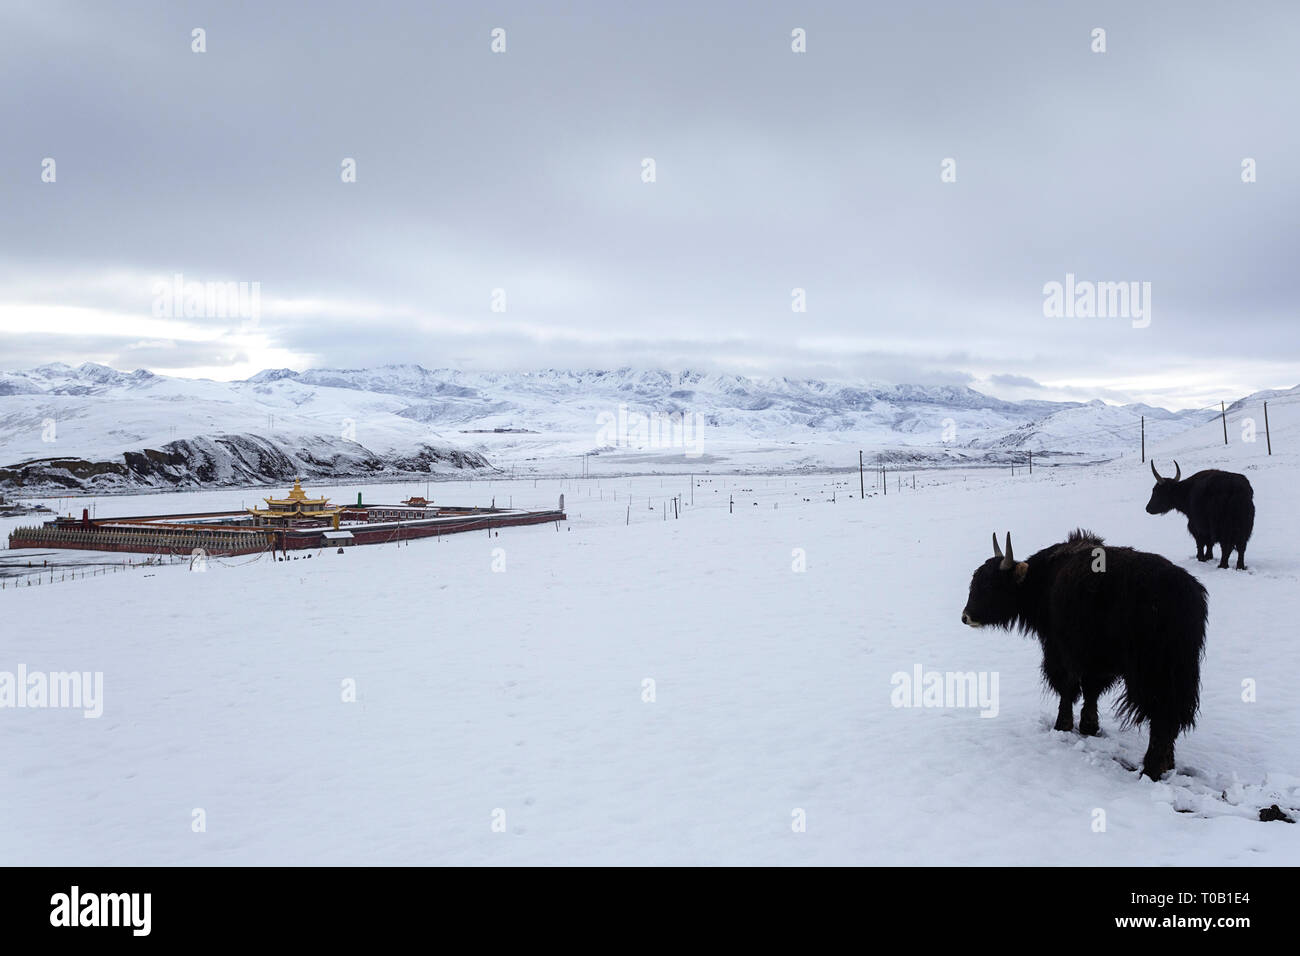 Yaks in snow covered landscape at Tagong Temple on the Tagong Grassland in Ganzi Prefecture, Sichuan Province - Stock Image